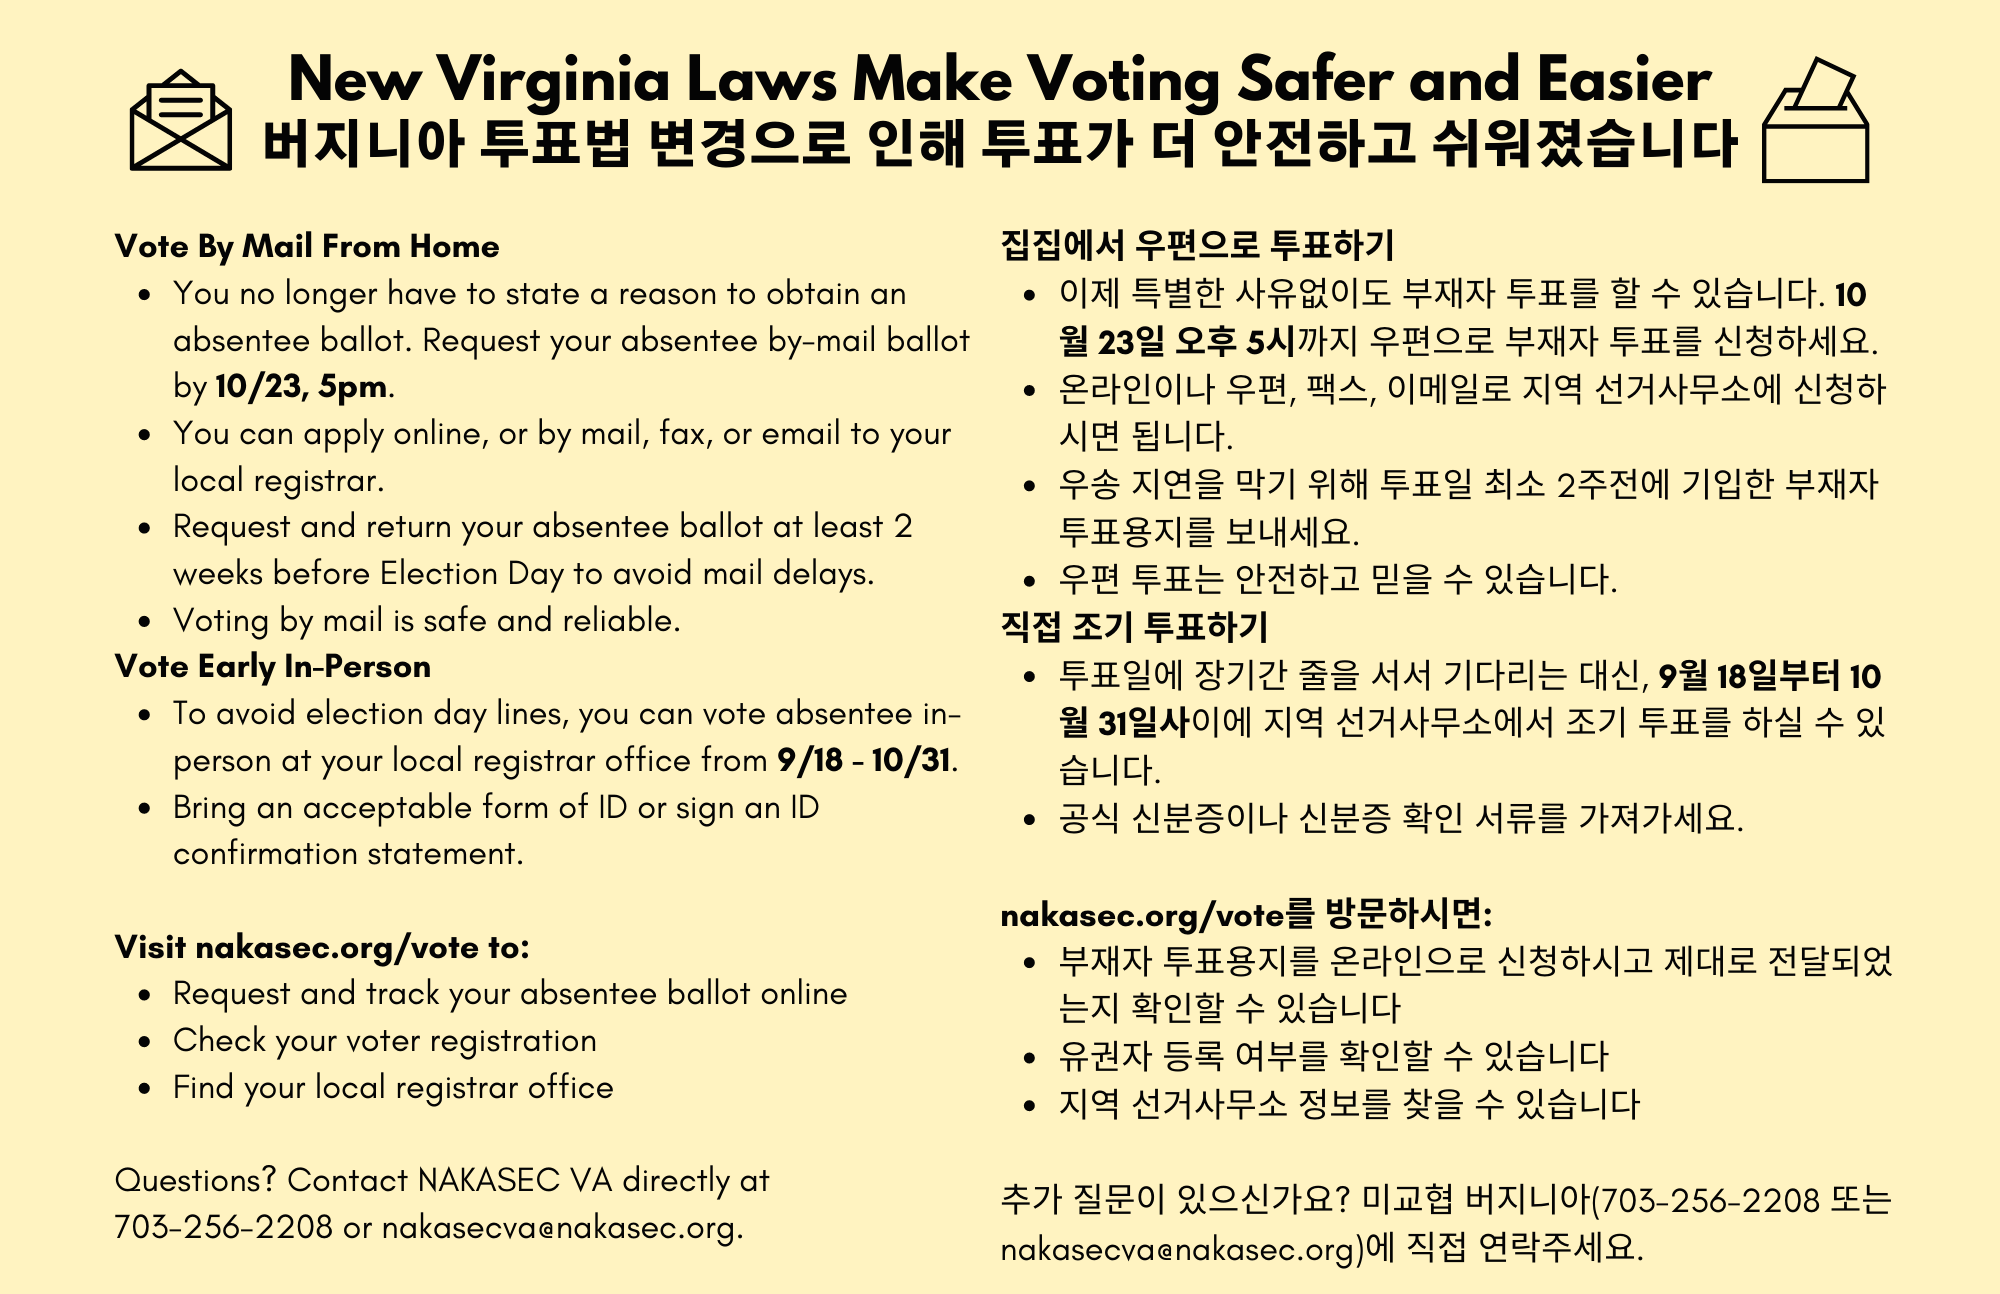 New Virginia Laws Make Voting Safer and Easier; translated to Korean